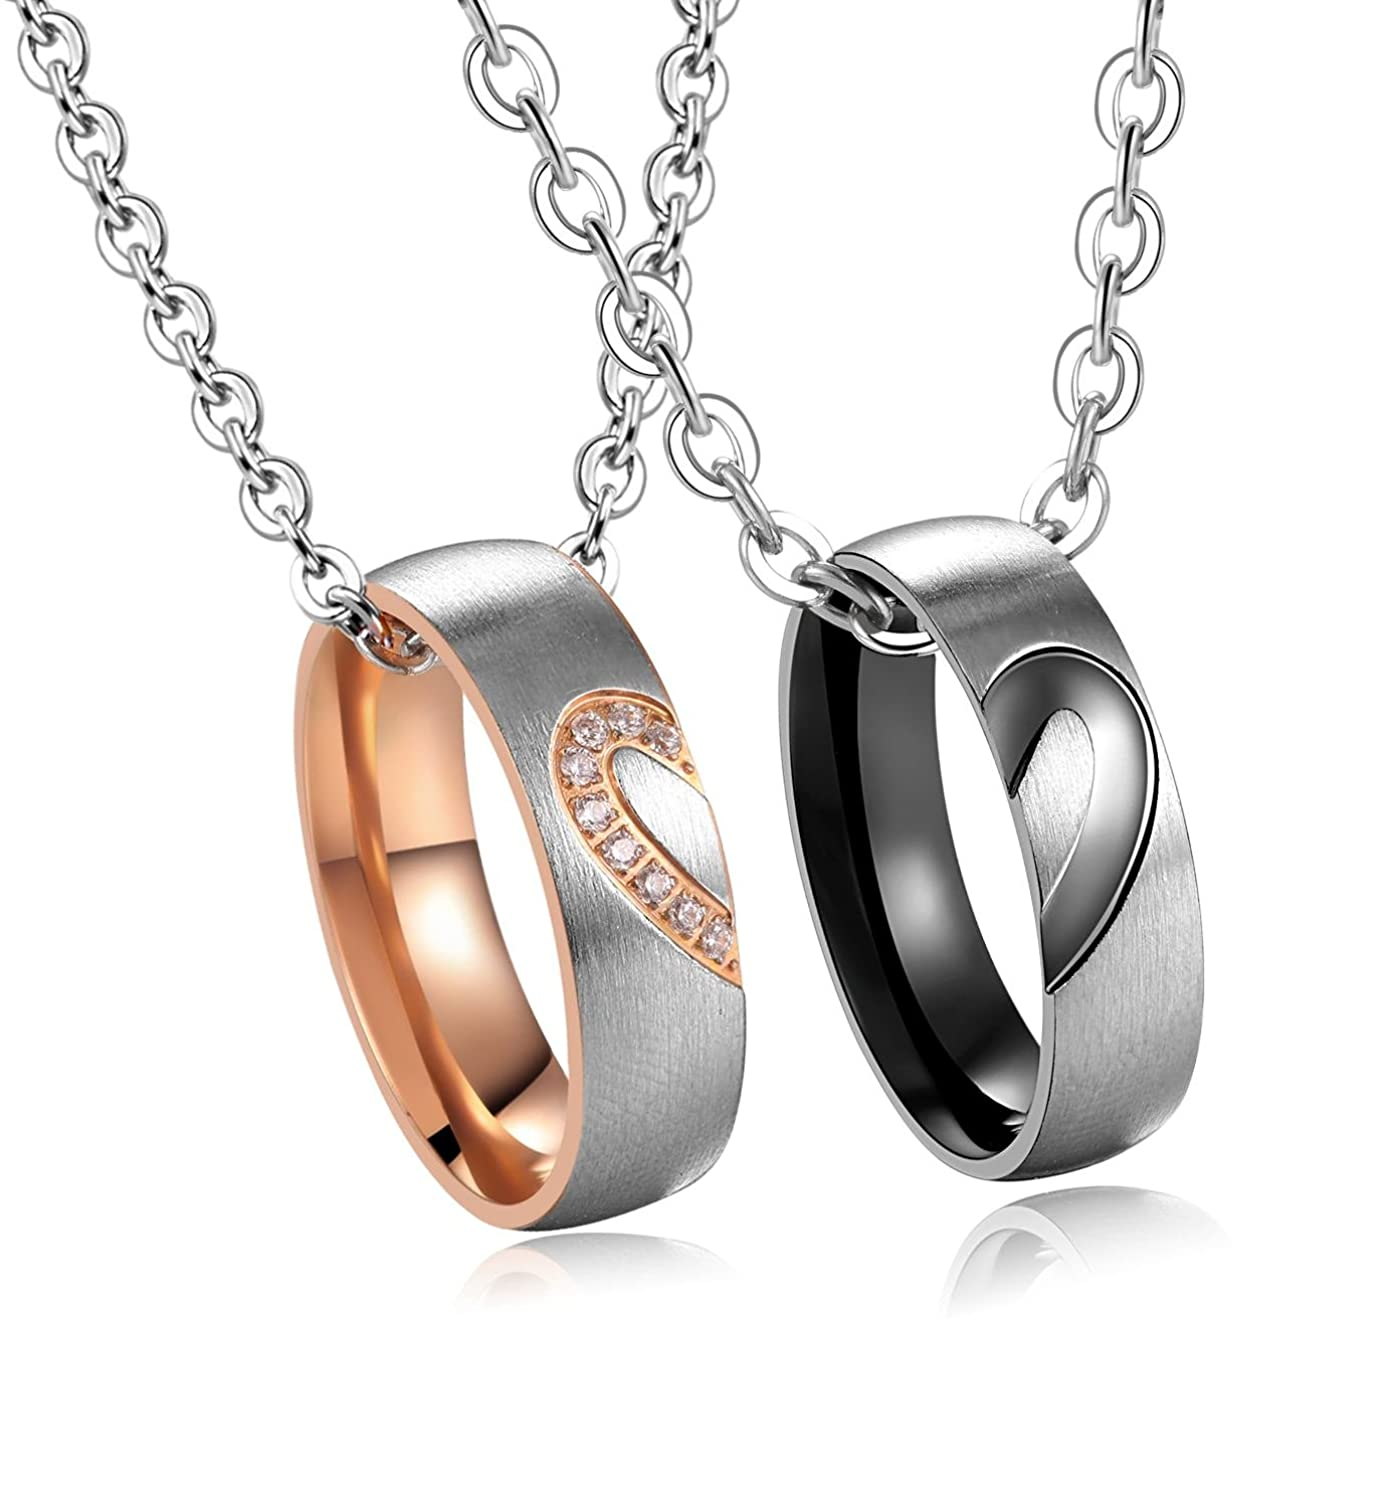 Amazon.com: His & Hers Matching Set Titanium Stainless Steel Heart ...